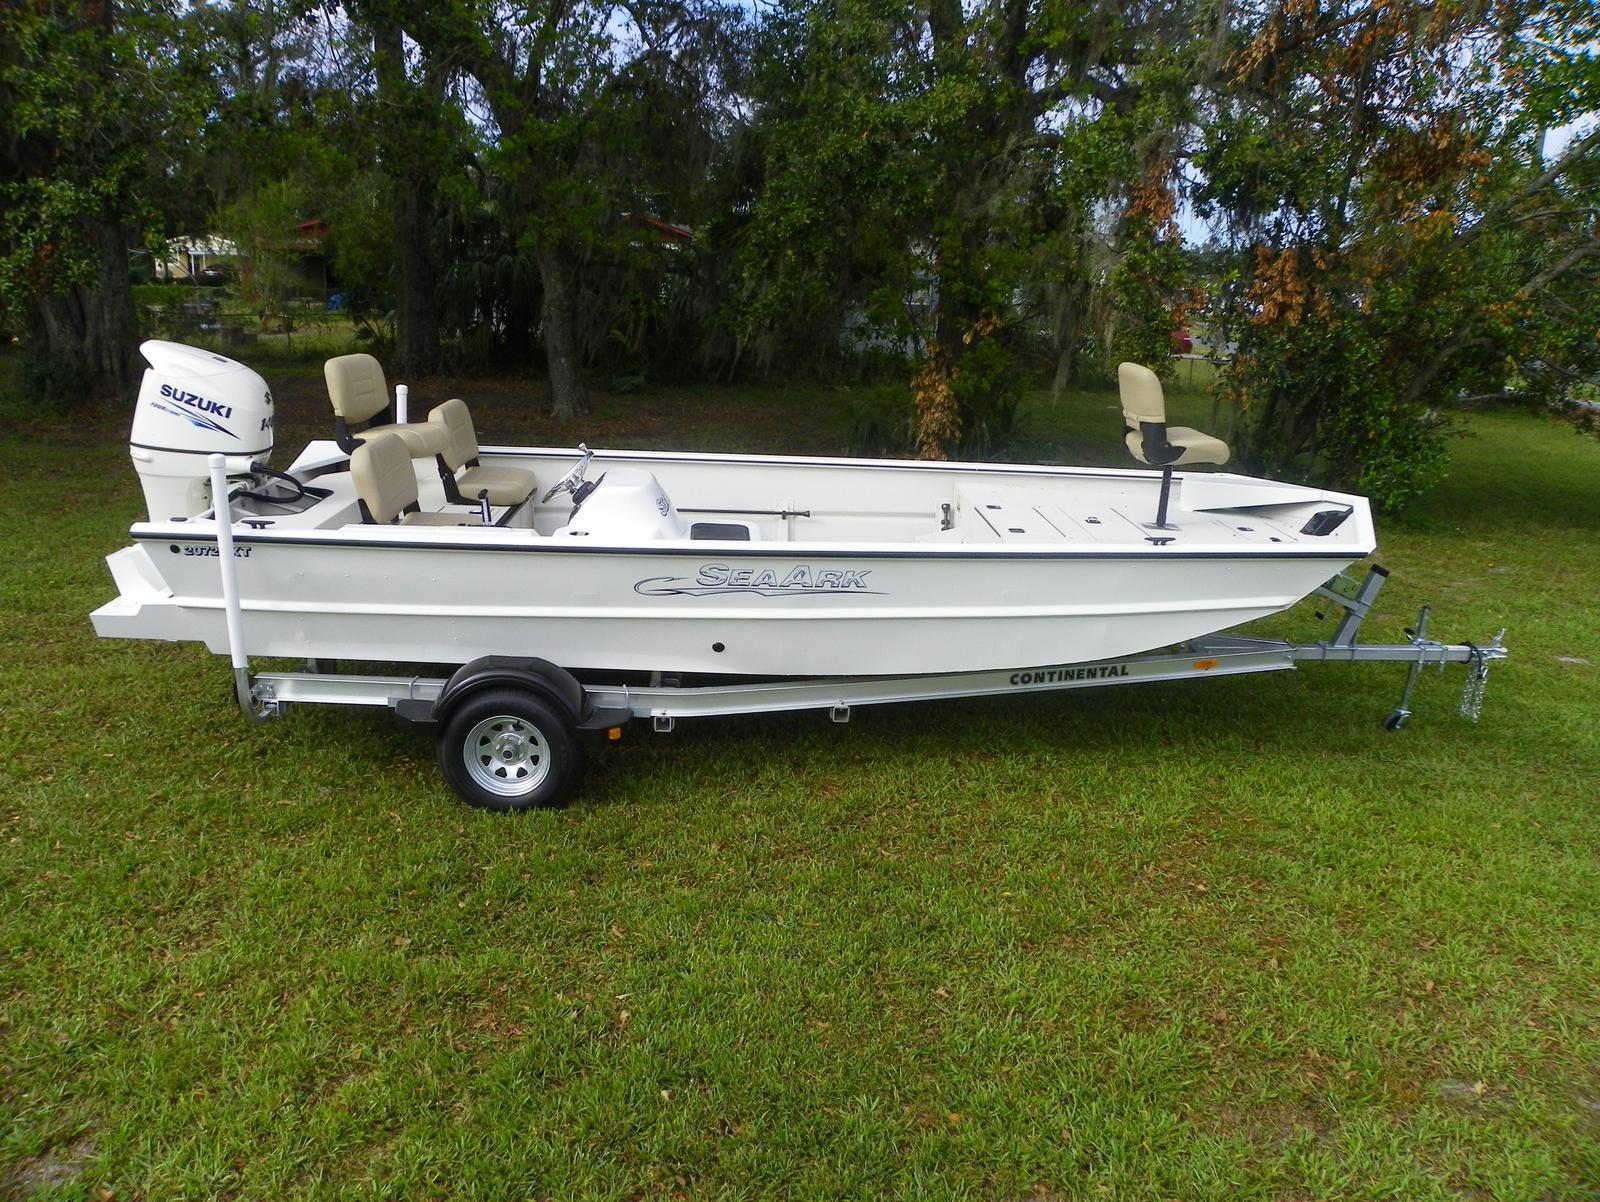 2018 SeaArk 2072 FXTS SC for sale in Lakeland, FL | Old Salt Marine (863)  802-0543